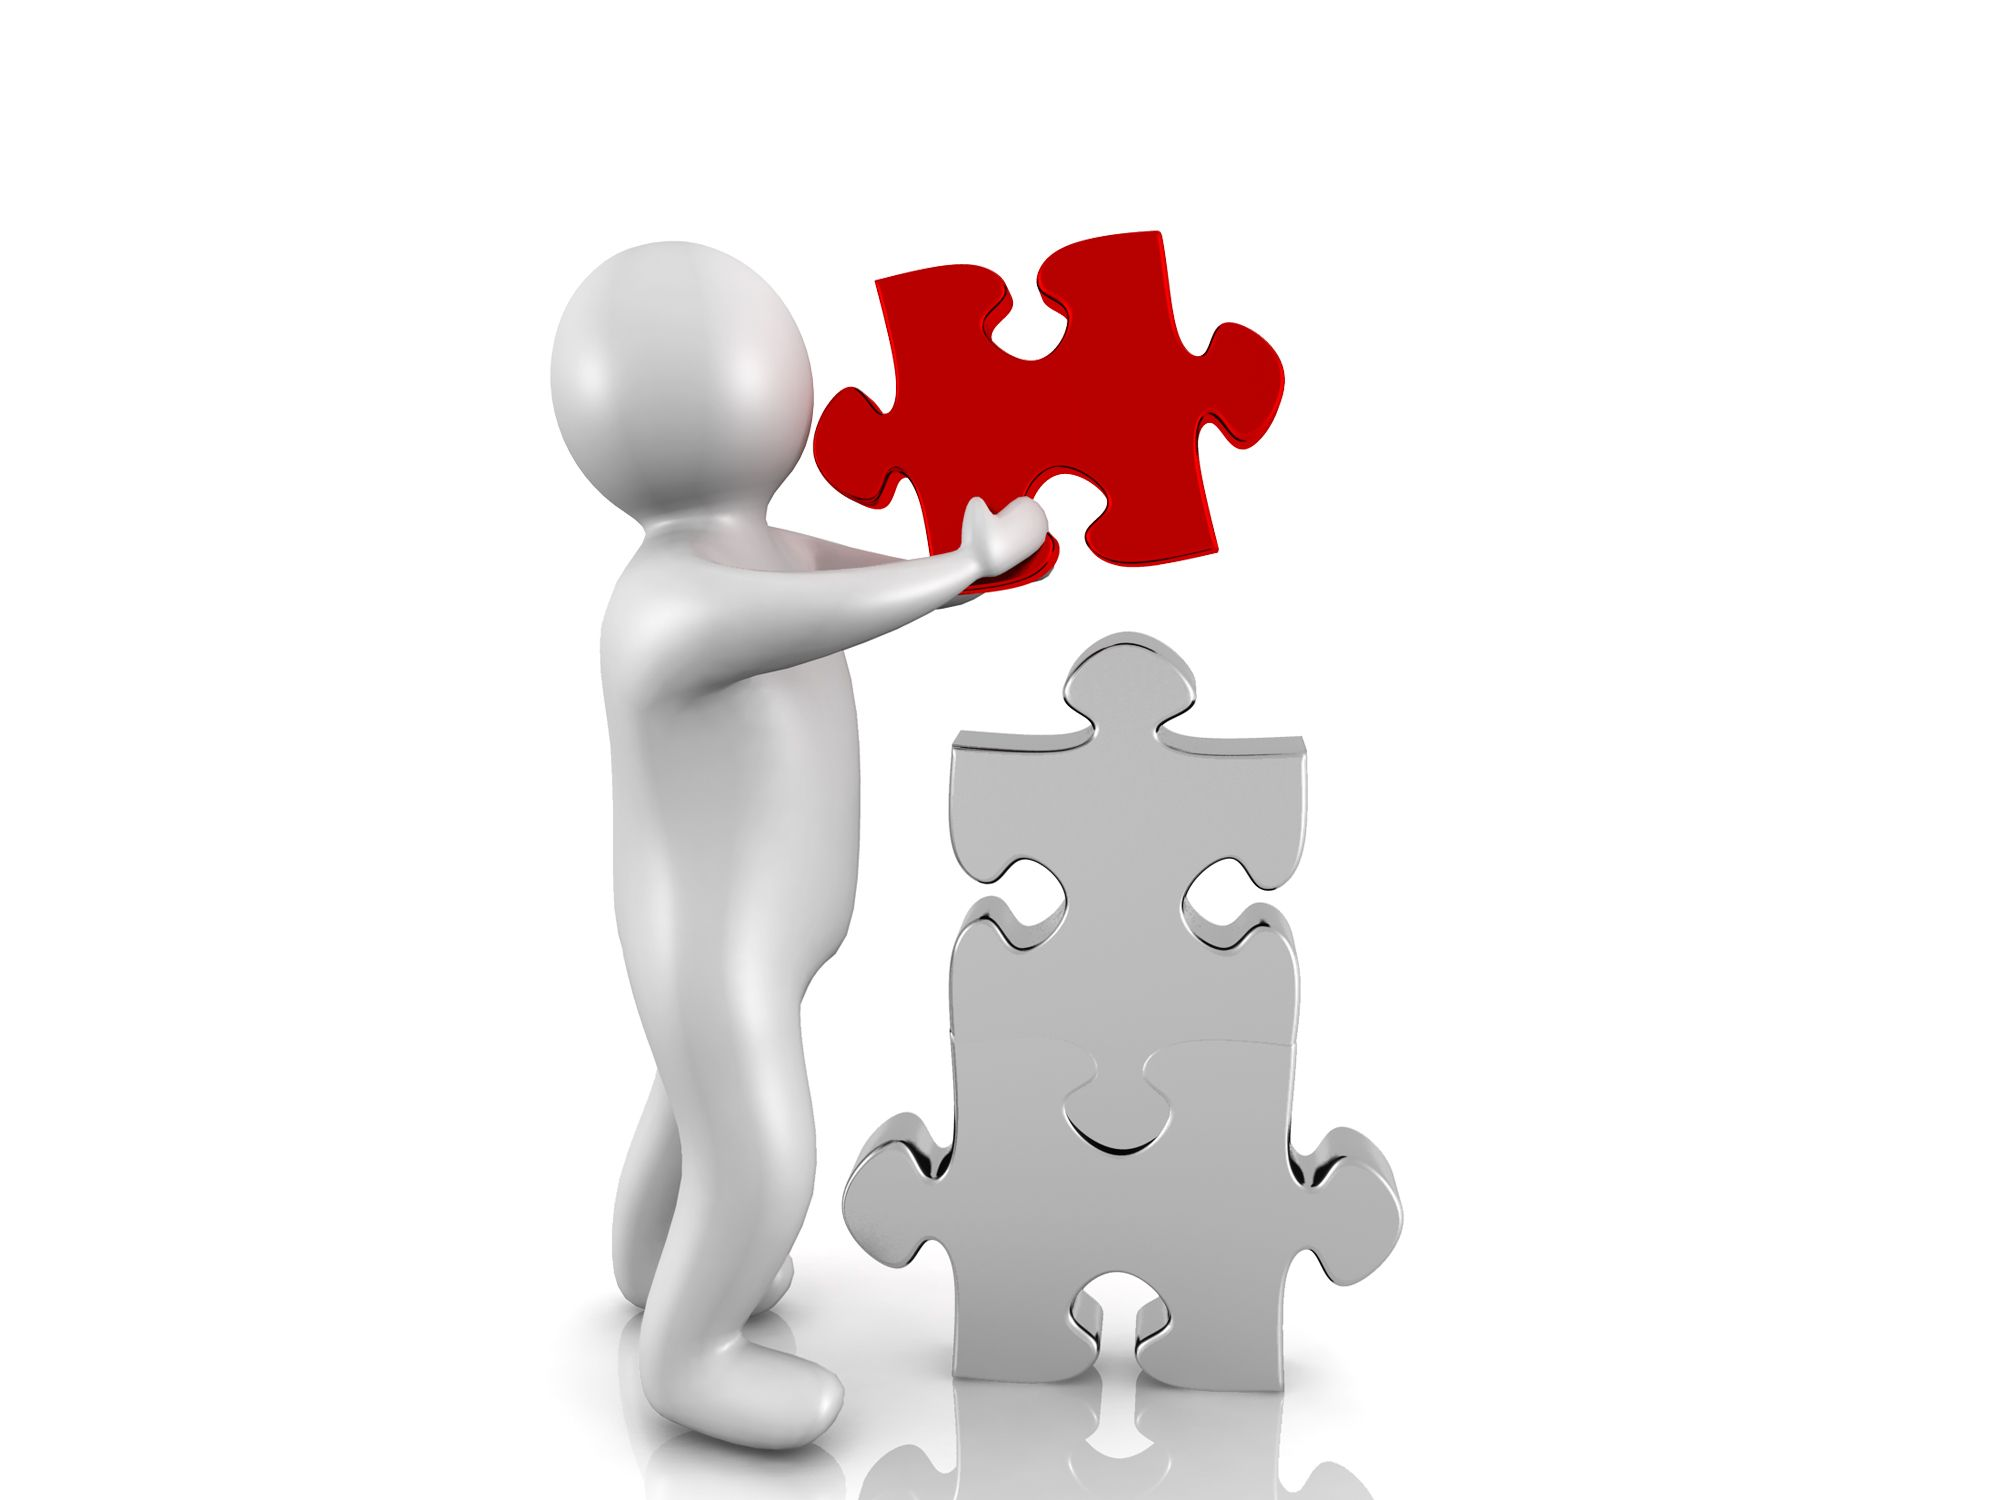 0914 3d Man And Puzzle Pieces Jigsaw Business Leader Image Stock Photo Slide01